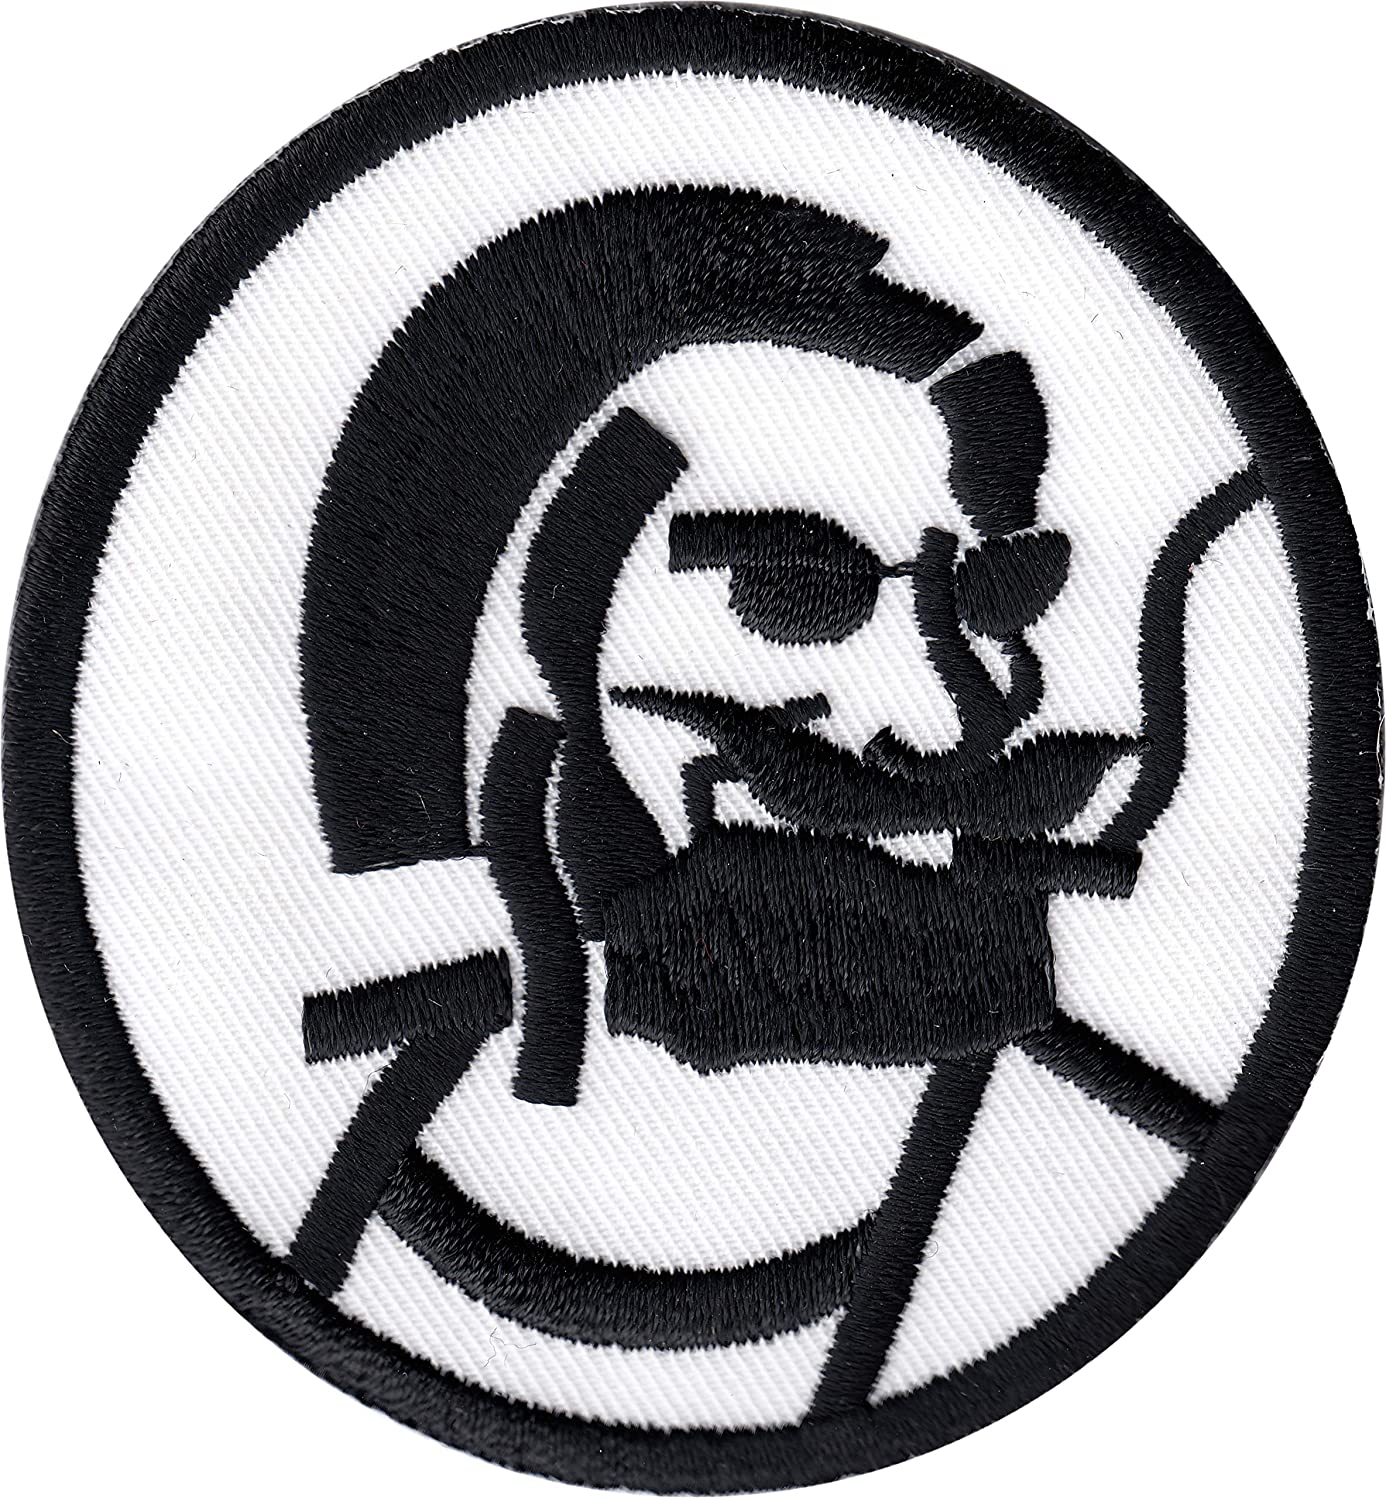 Zig Zag Man - Black Design and Border on White Background - Embroidered Iron On Or Sew On Patch